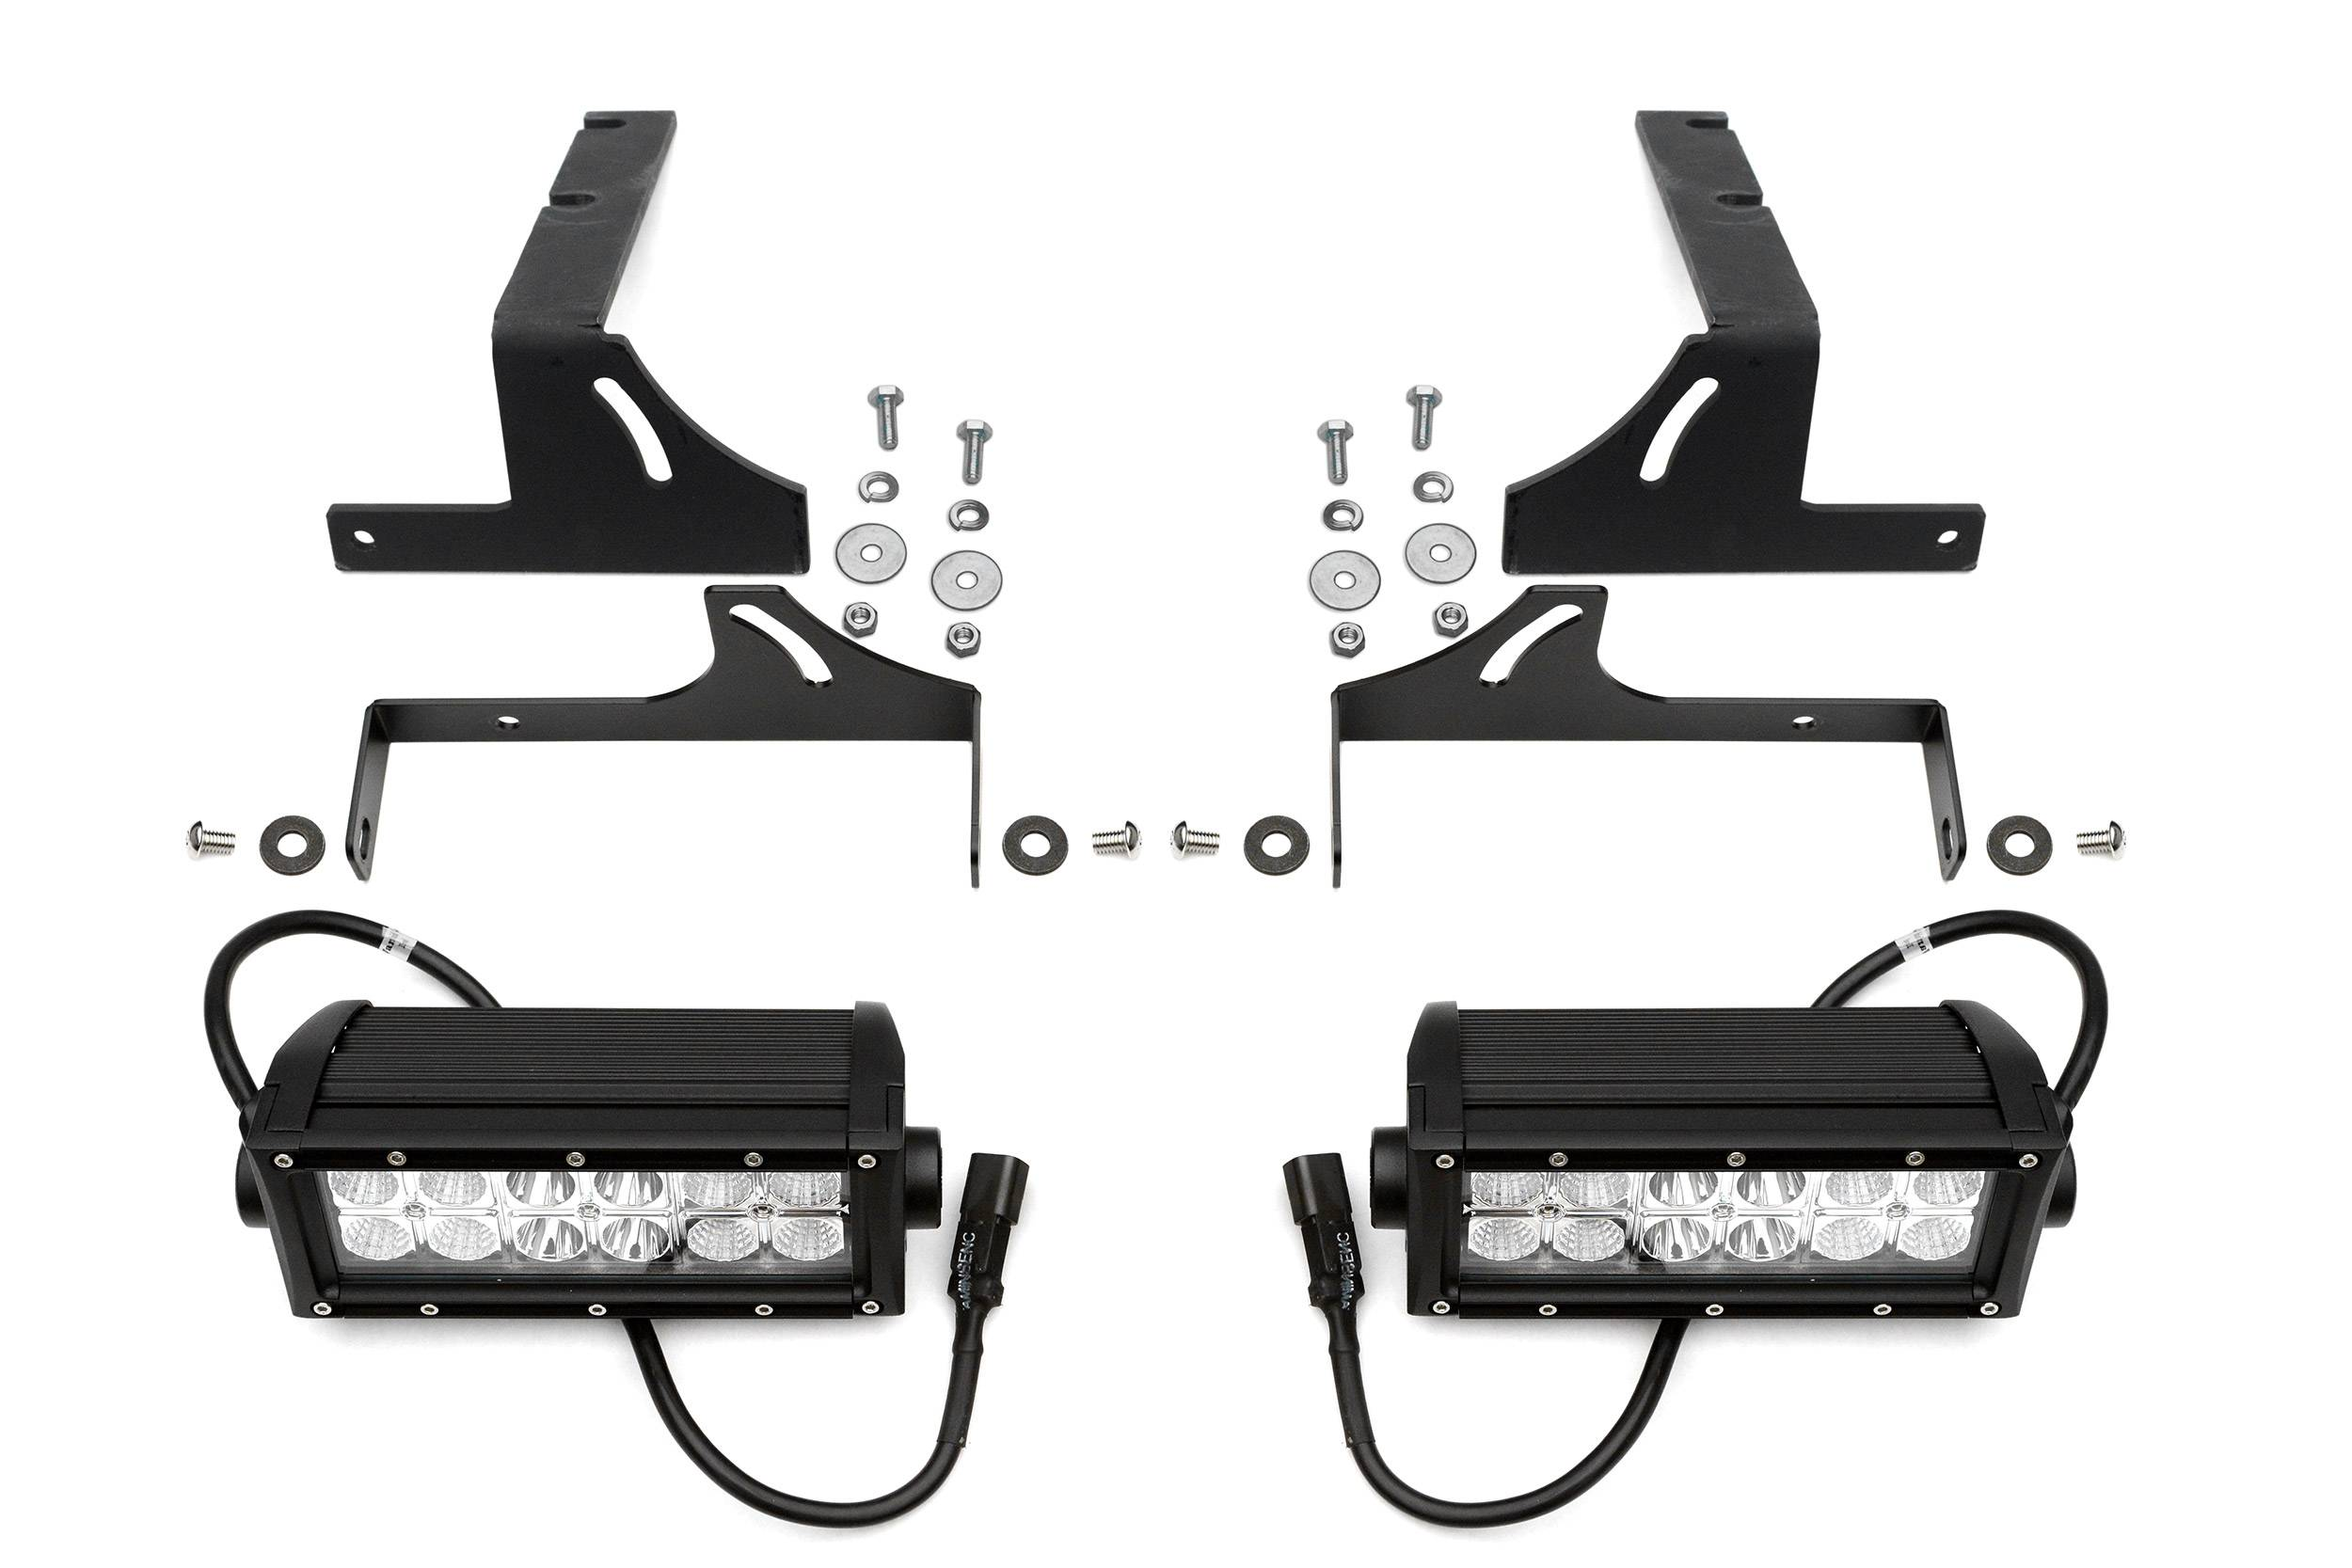 ZROADZ                                             - 2015-2019 Silverado, Sierra HD Diesel models - Rear Bumper LED Kit with (2) 6 Inch LED Straight Double Row Light Bars - PN #z381421-KIT